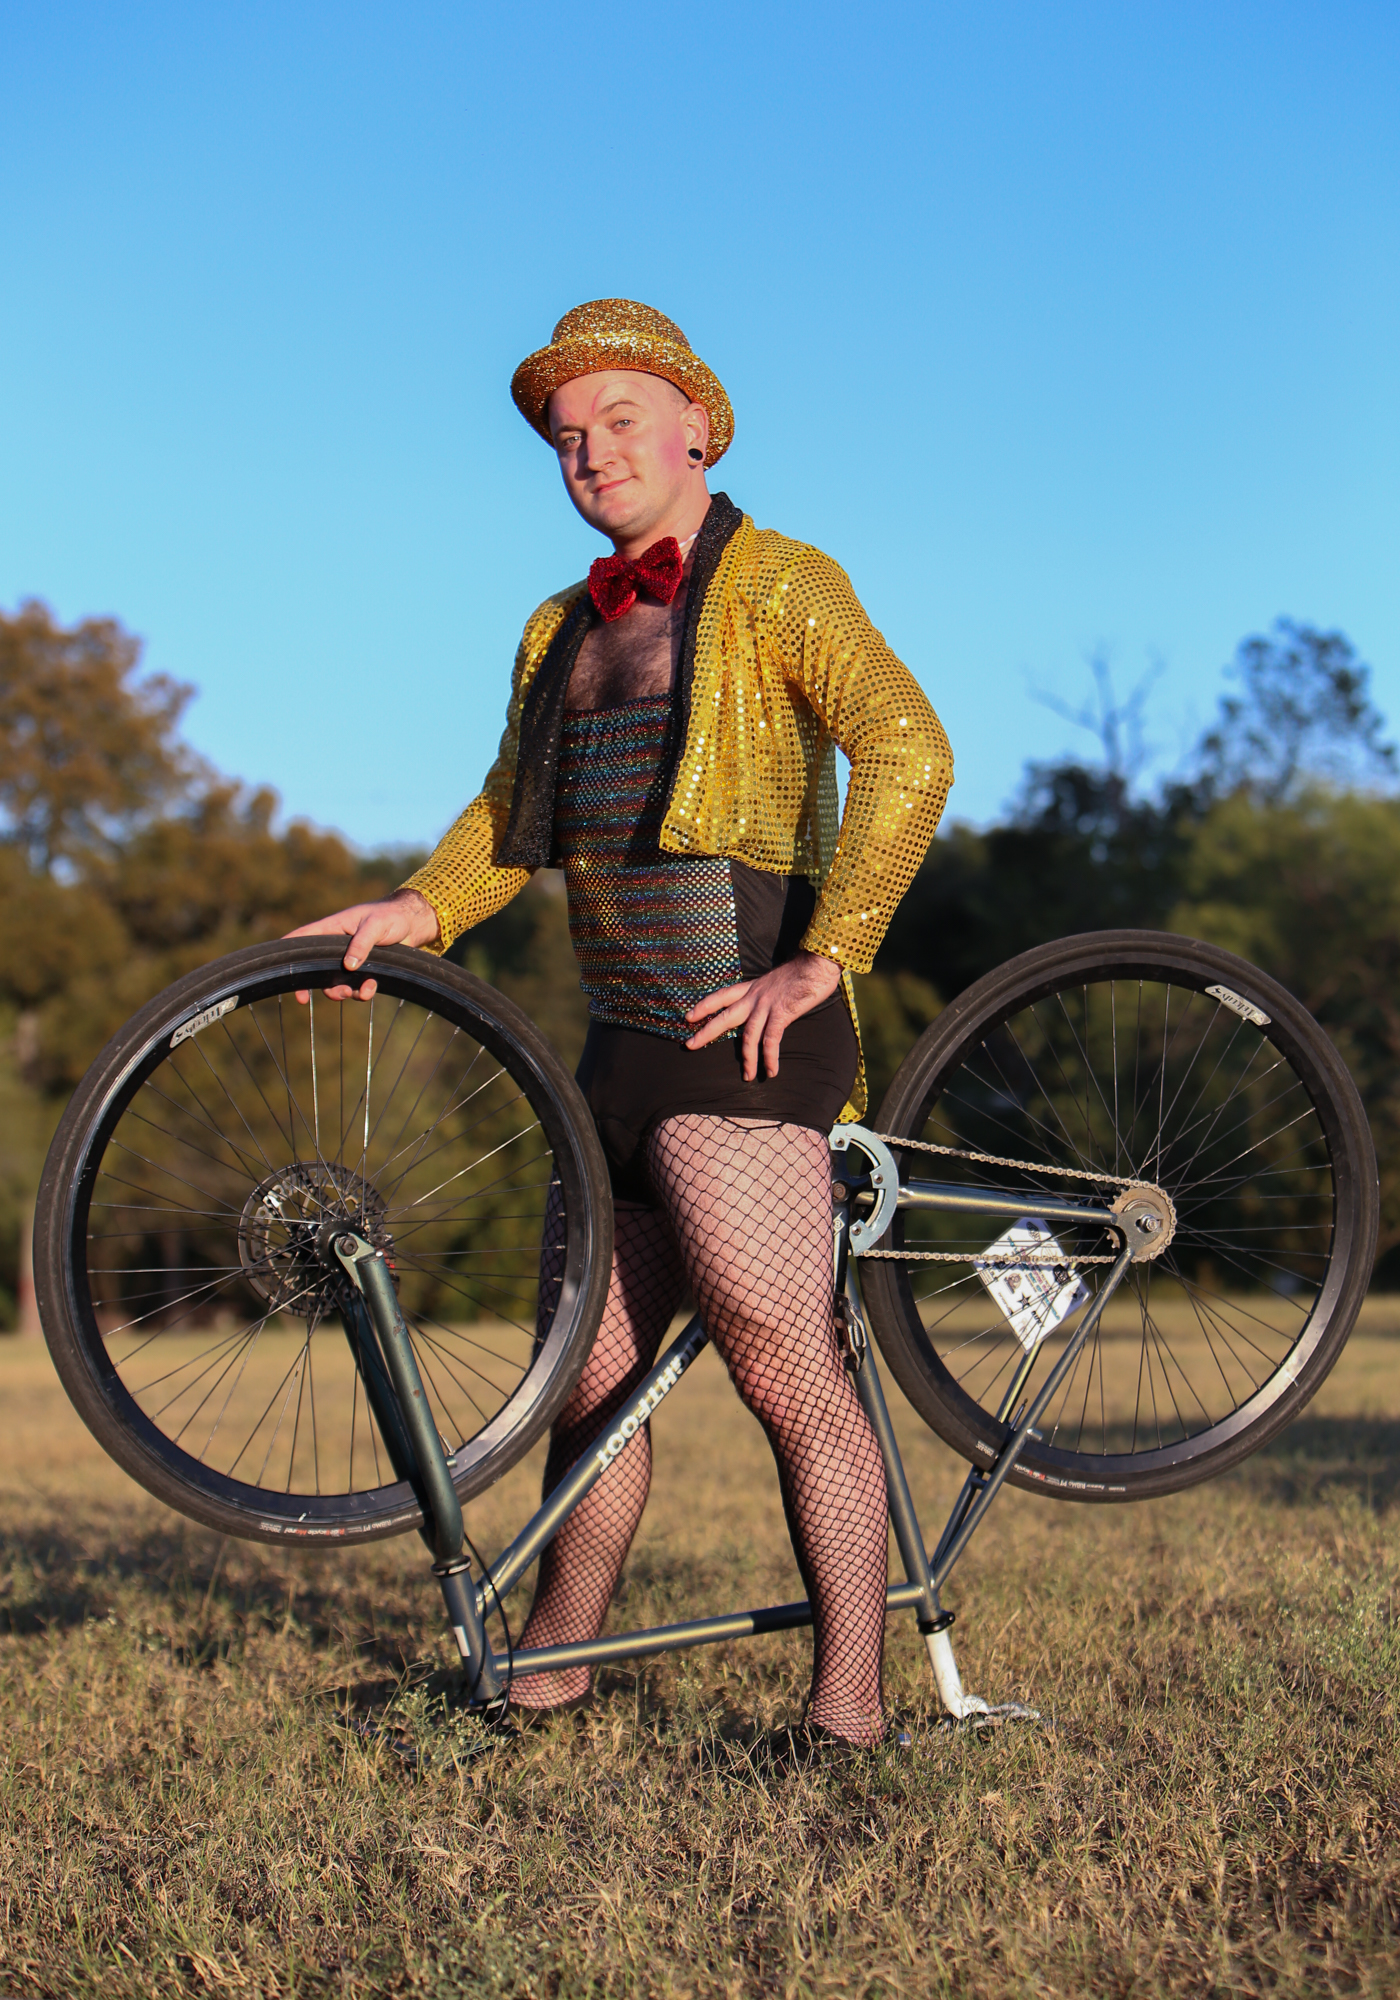 Johnny Stovall has been a member of the Austin Bike Polo Social Club for several years. He participated in the 2016 Halloween tournament dressed as Columbia from Rocky Horror Picture Show. He said as a driver, he wasn't aware of the three-foot rule that is supposed to be maintained between cars and cyclists, and that he didn't learn about it until he started bike commuting. Bartholomew District Park, October 29, 2016.